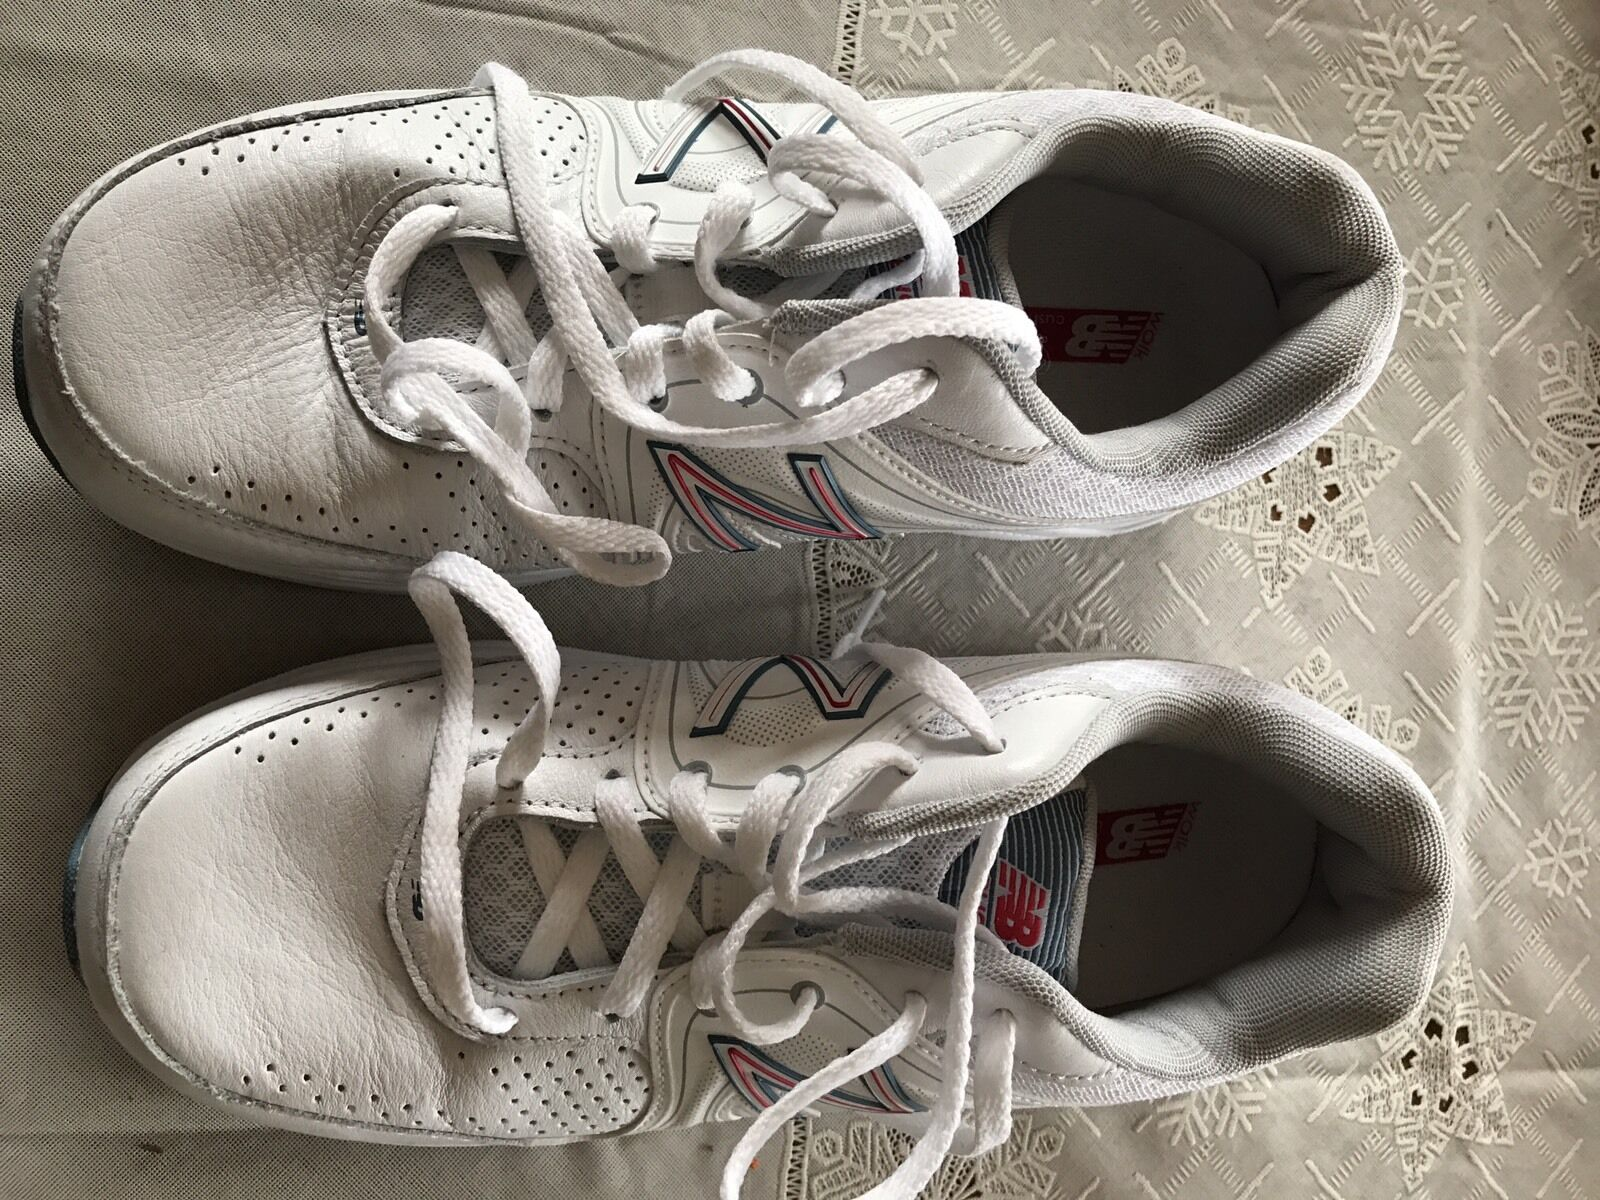 New Balance 840 Women's Shoes US Size 8D (wide) manuf 12/2015 white/blue/pink